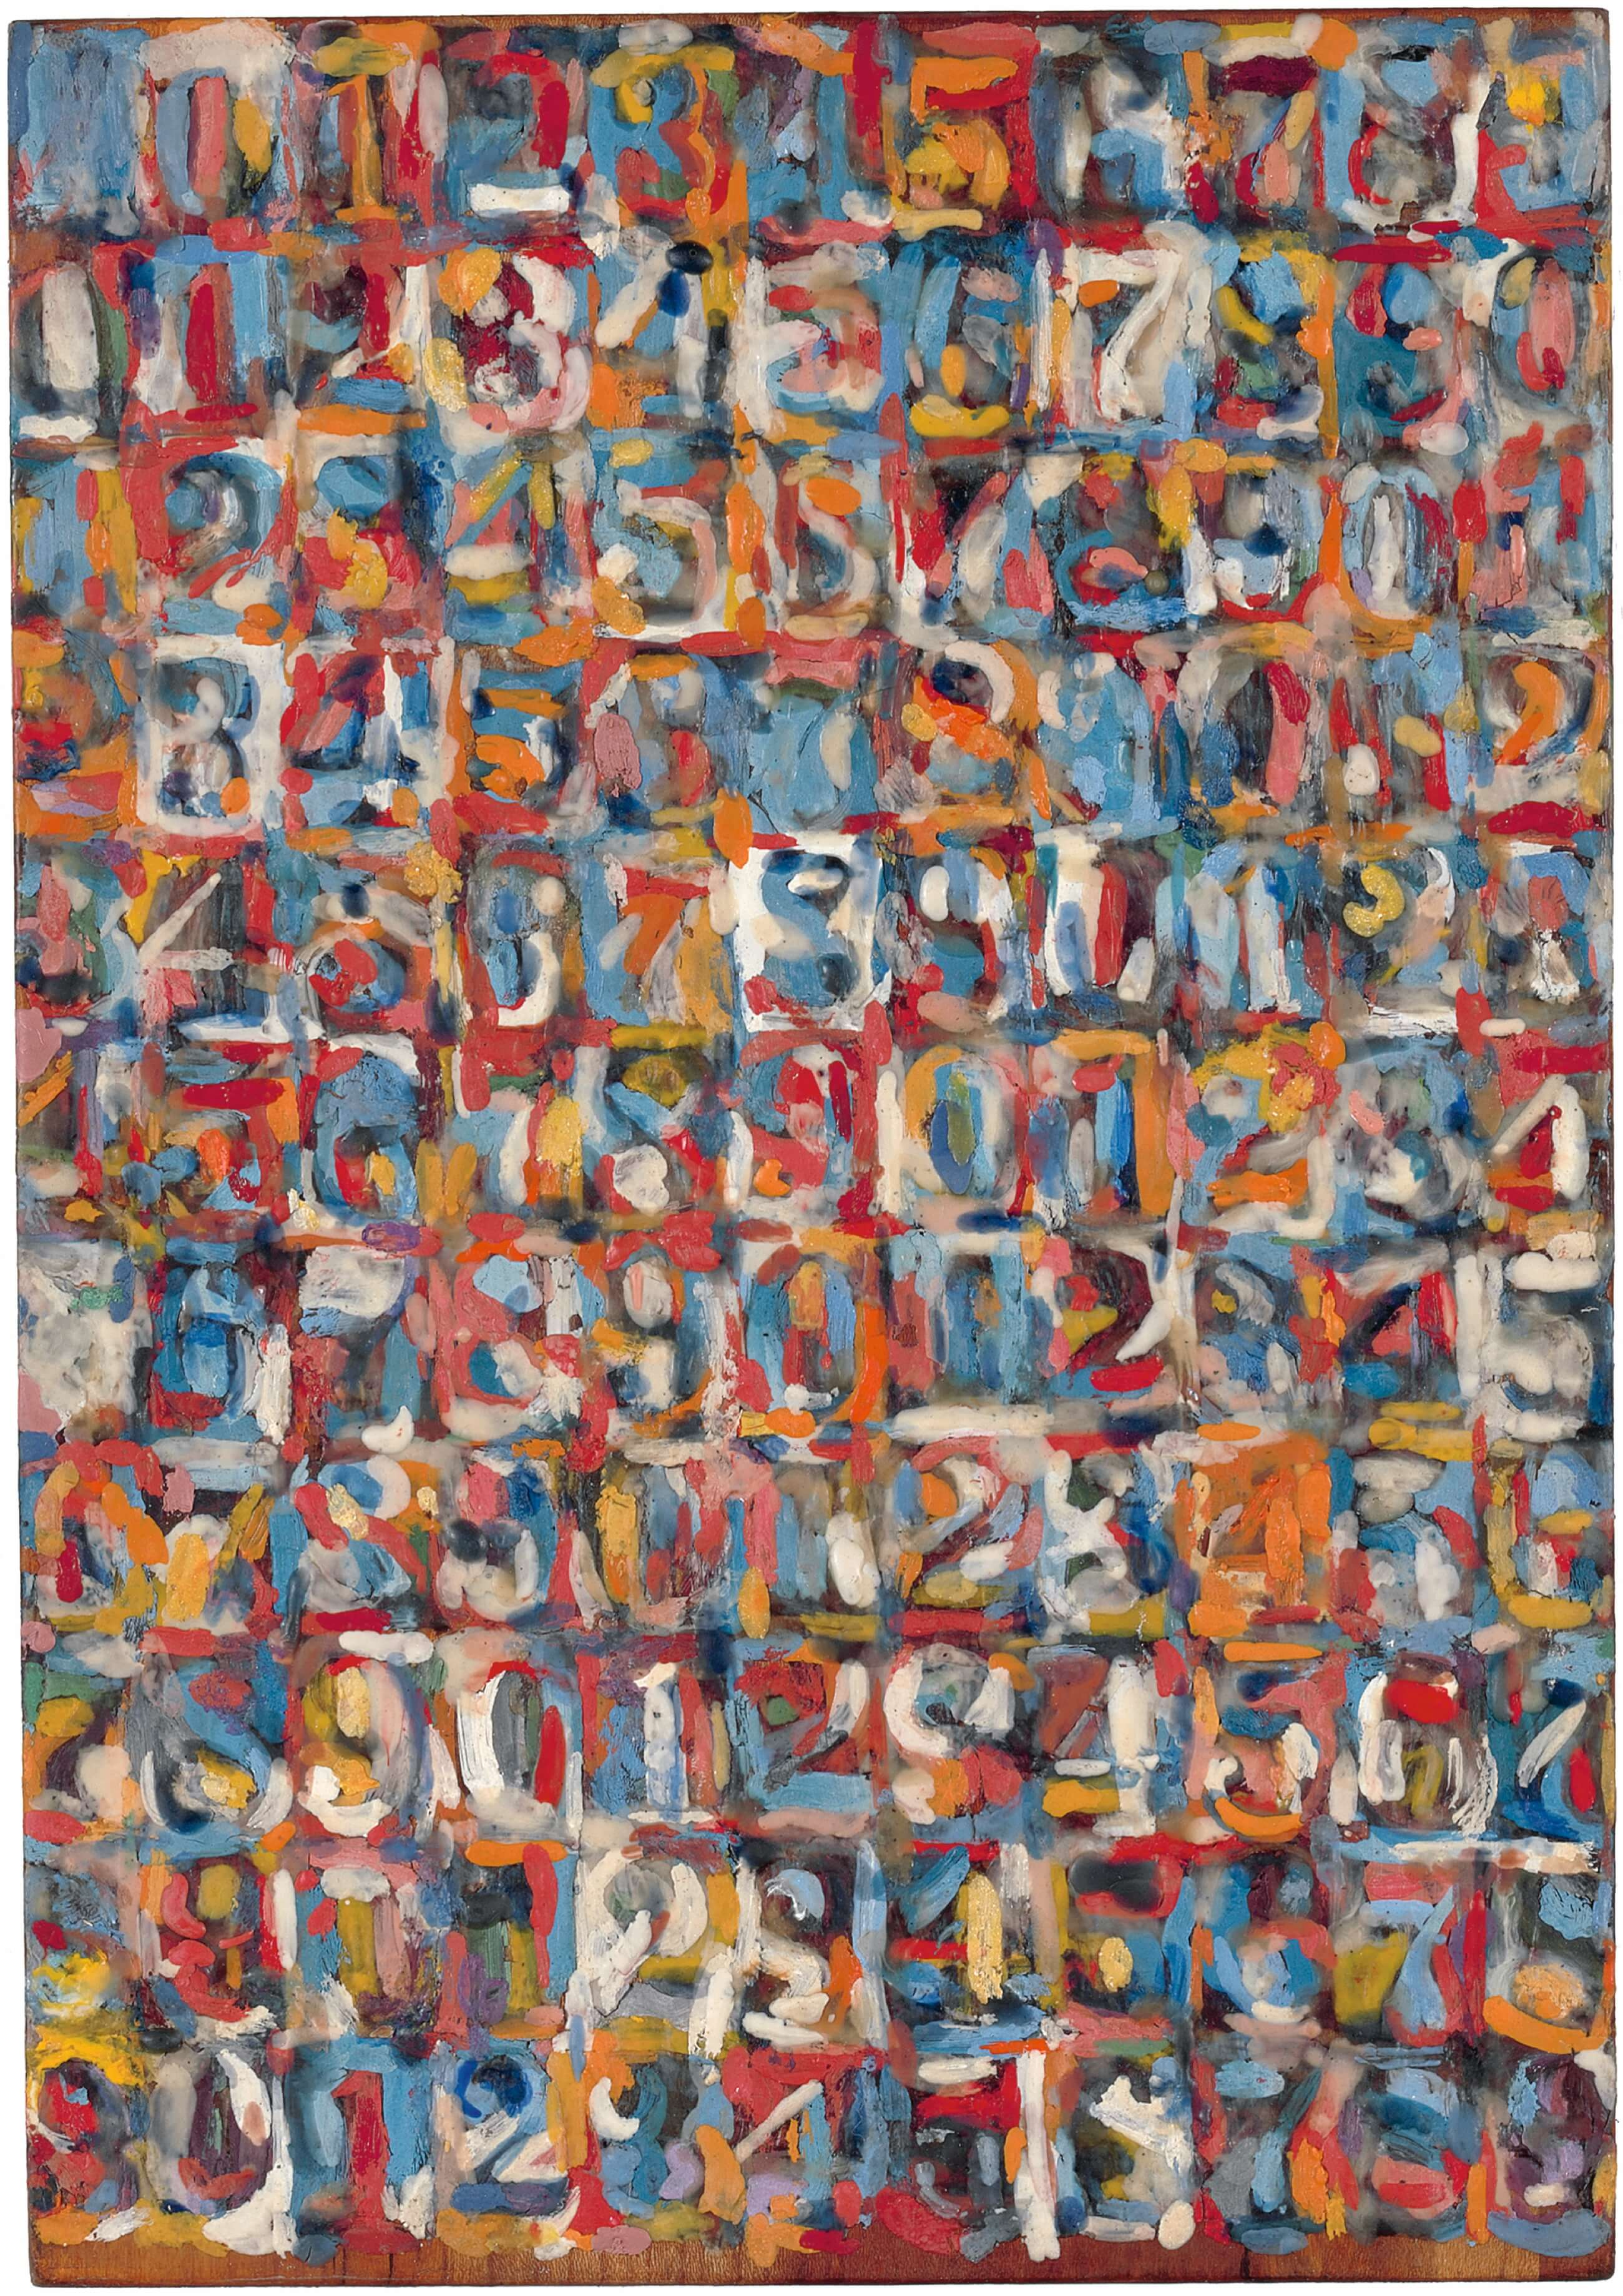 Small Numbers in Color, 1959, by Jasper Johns